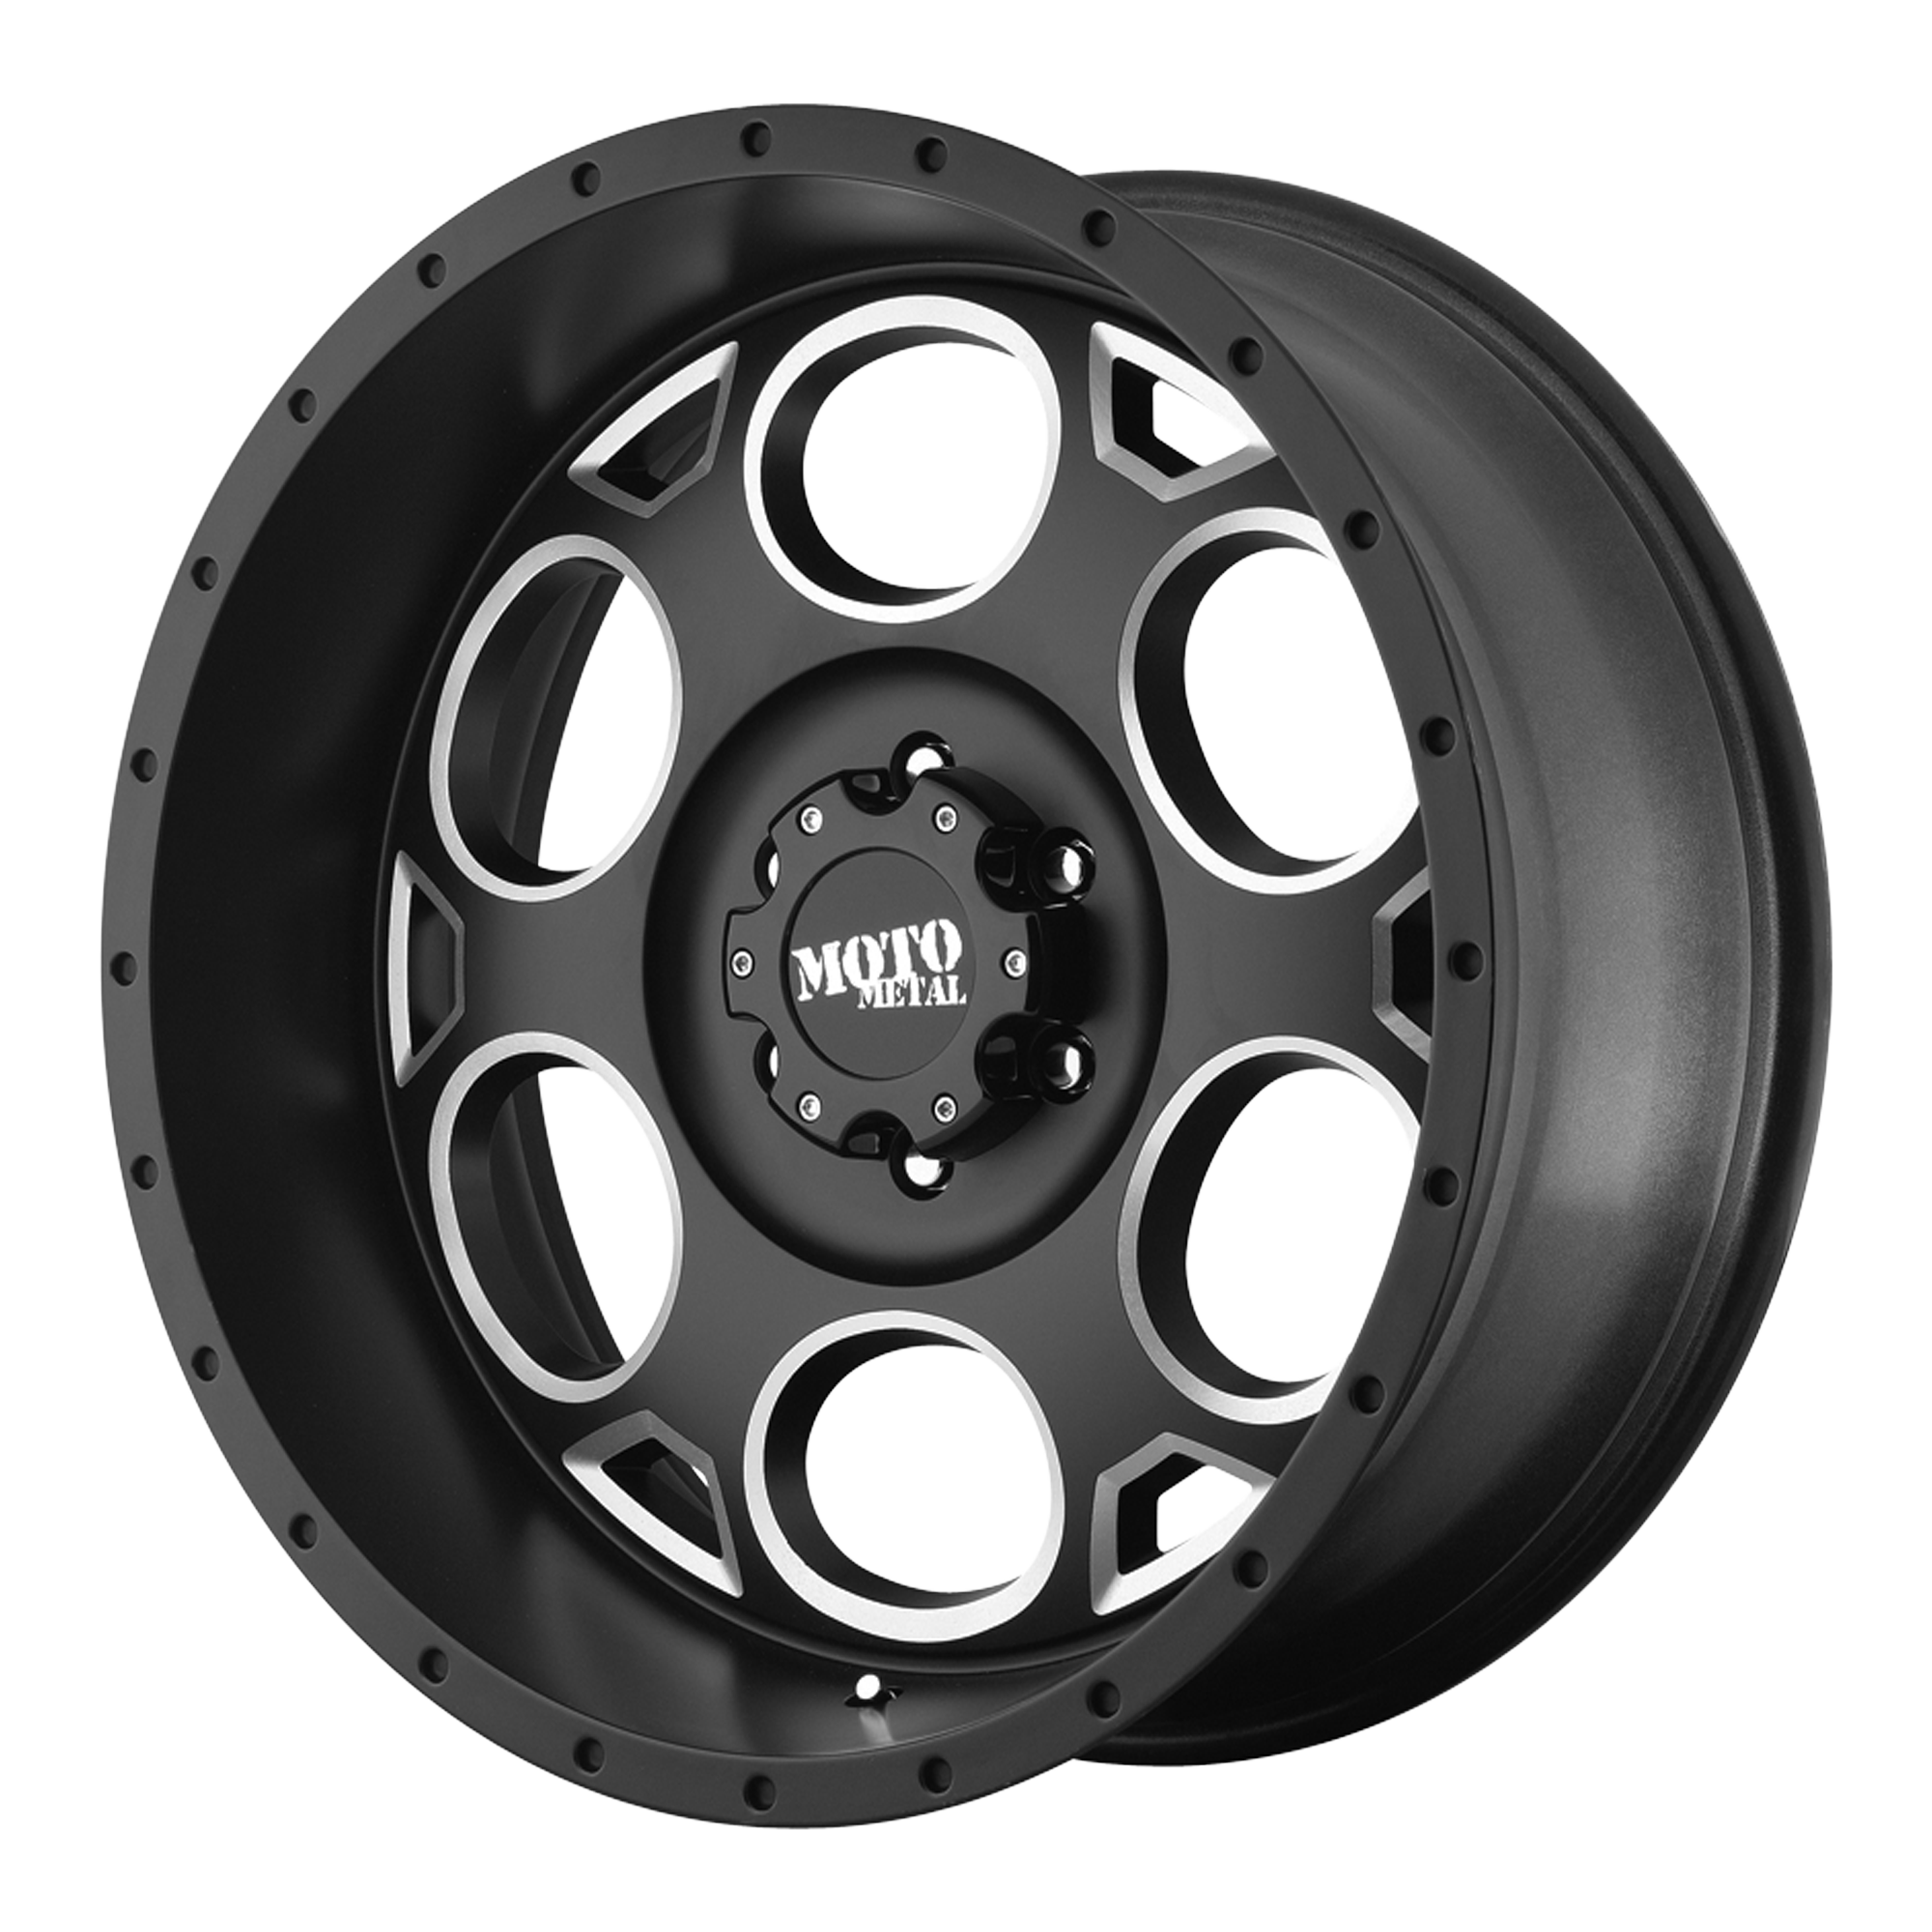 Moto Metal Offroad Wheels MO964 Satin Black Milled